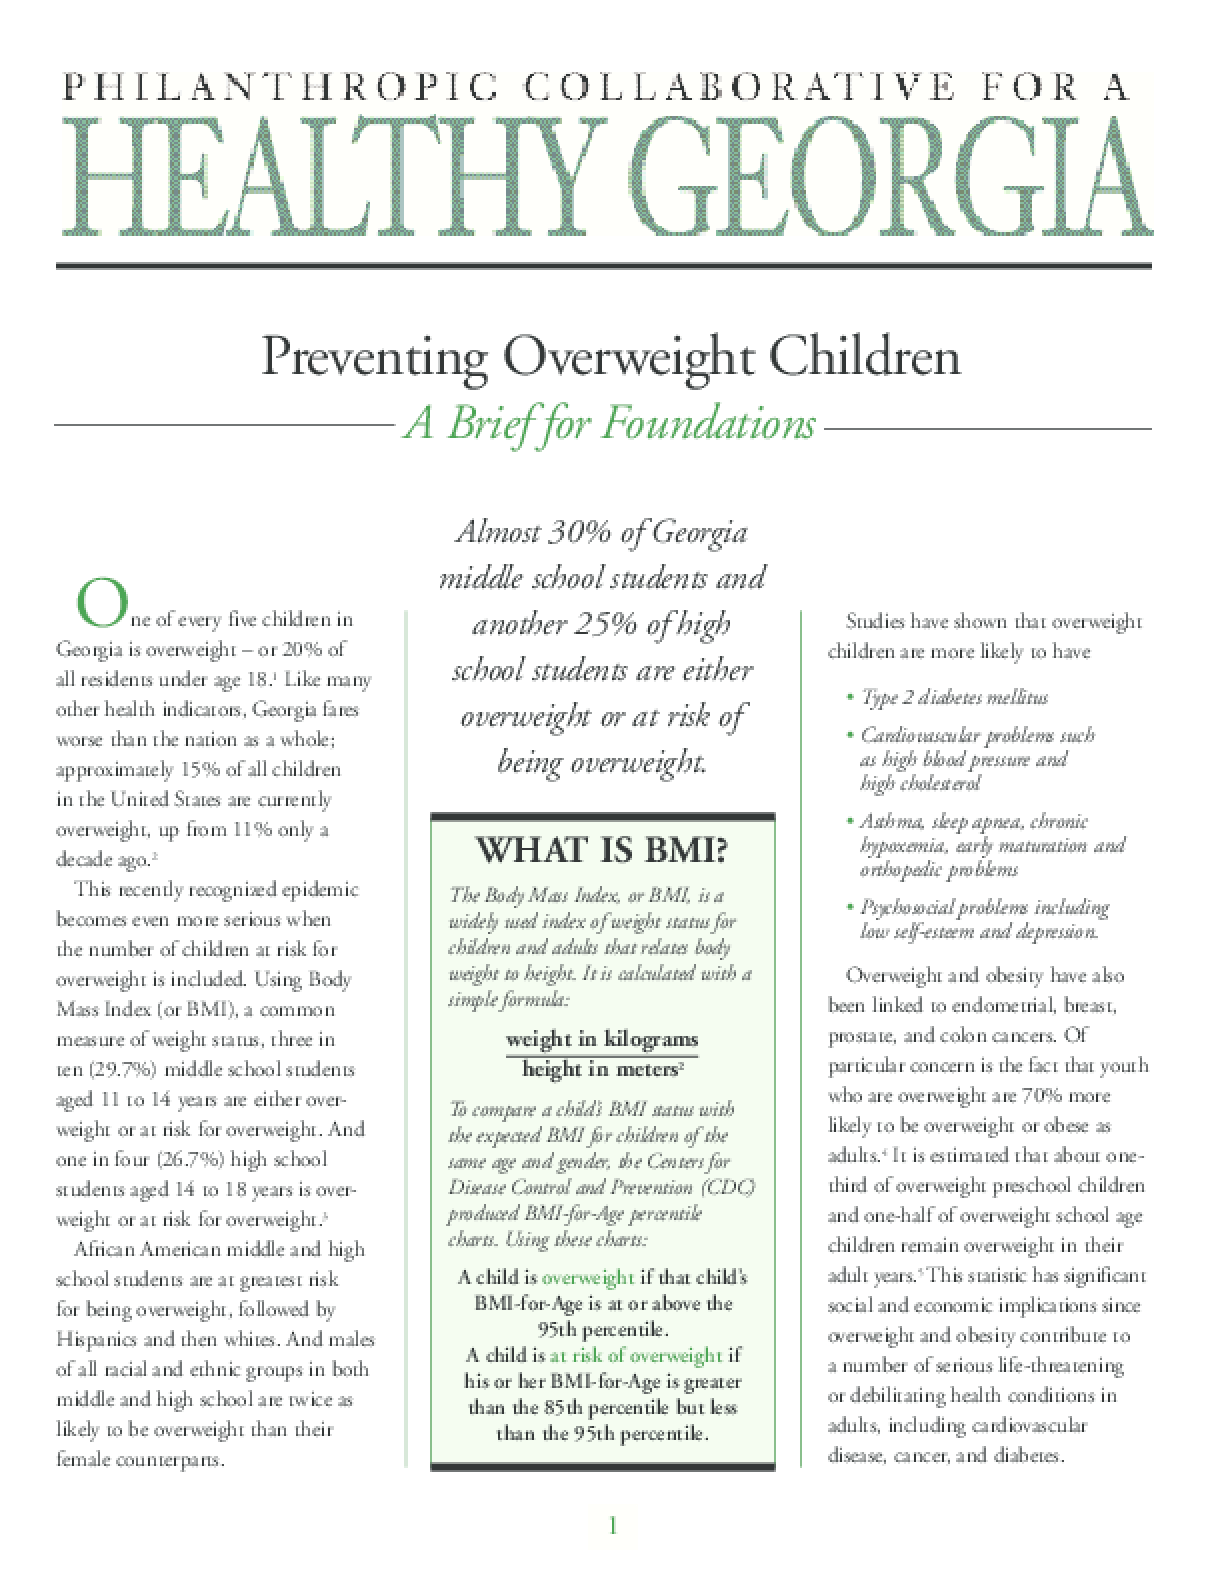 Preventing Overweight Children - A Brief for Foundations